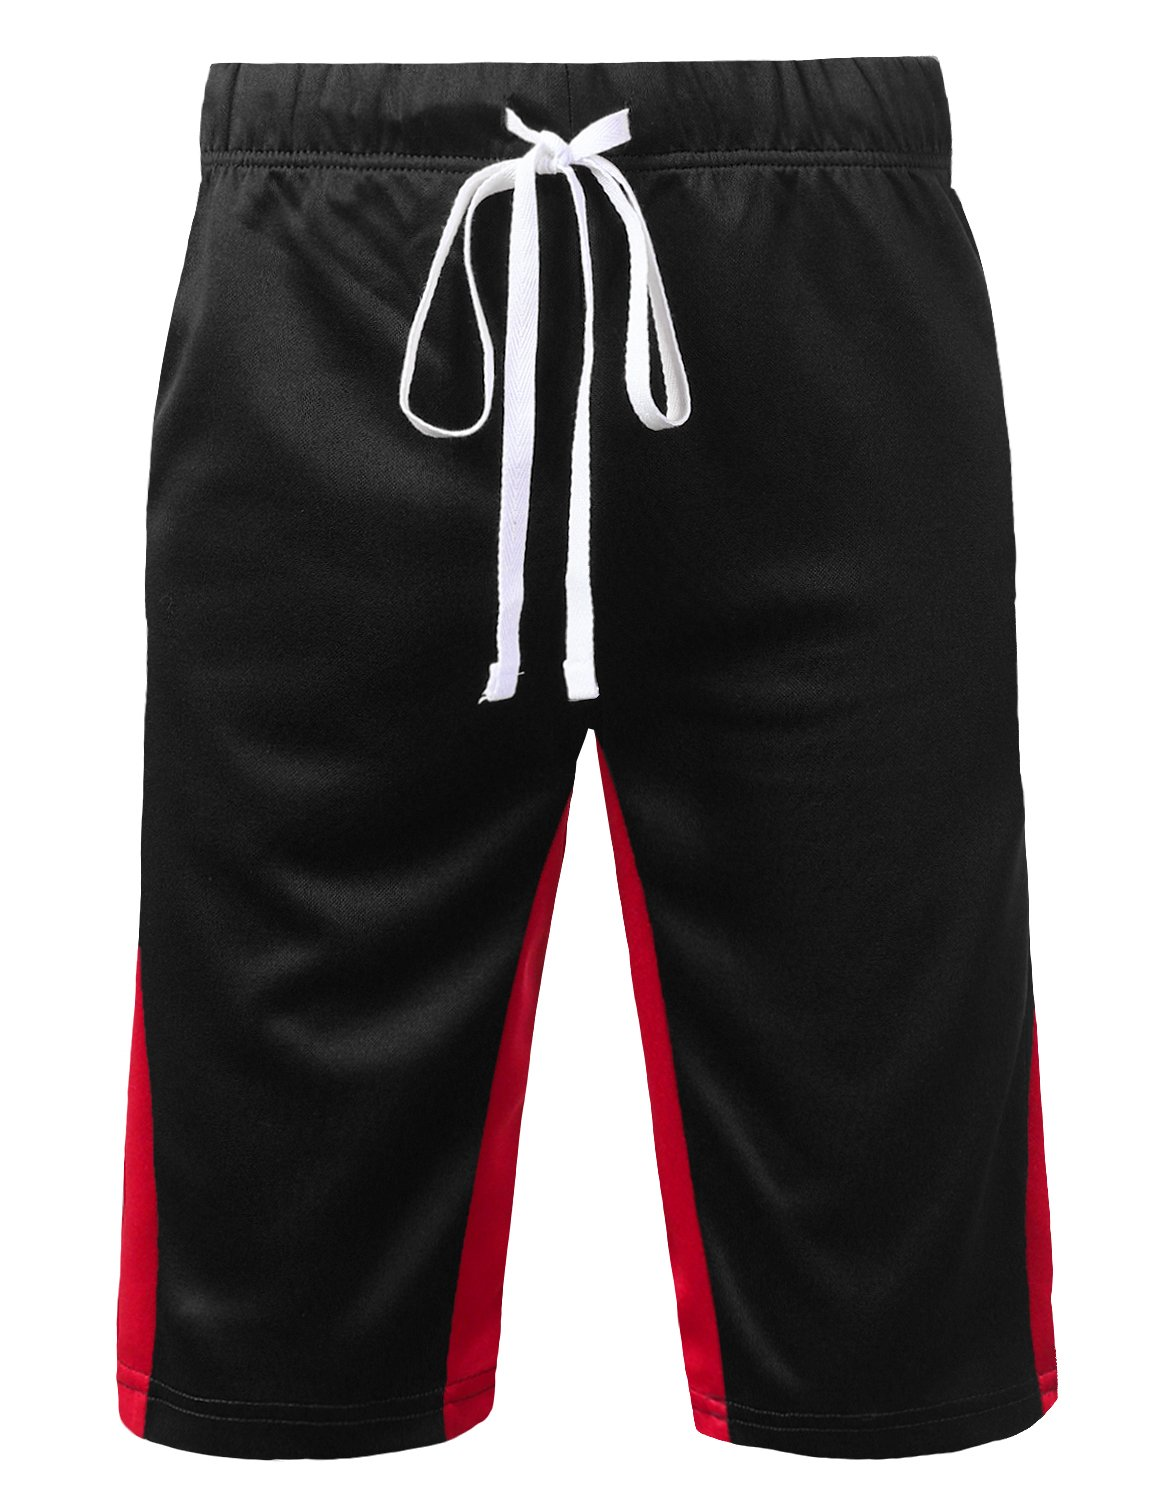 URBANCREWS SHORTS メンズ B07CSHZPMS Large|Ambs051_blackred Ambs051_blackred Large